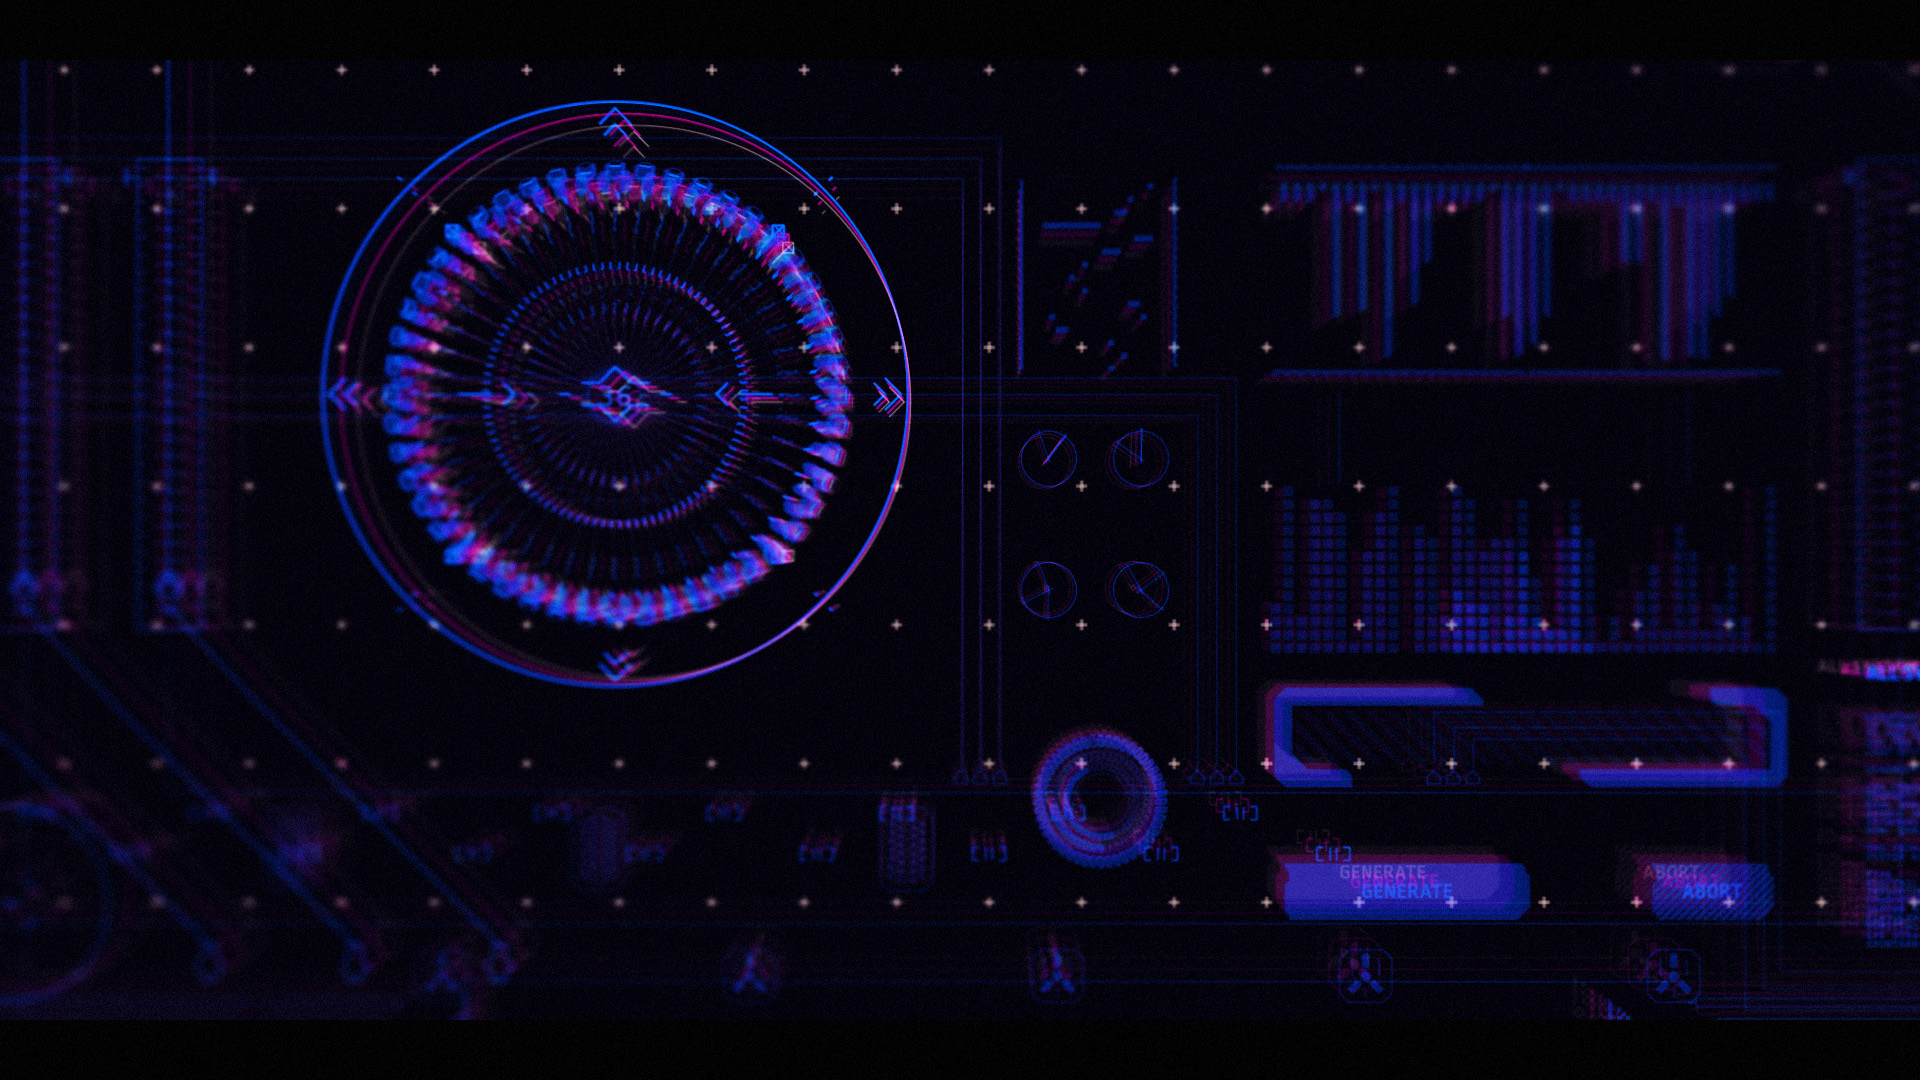 sci-fi interface created in After Effects